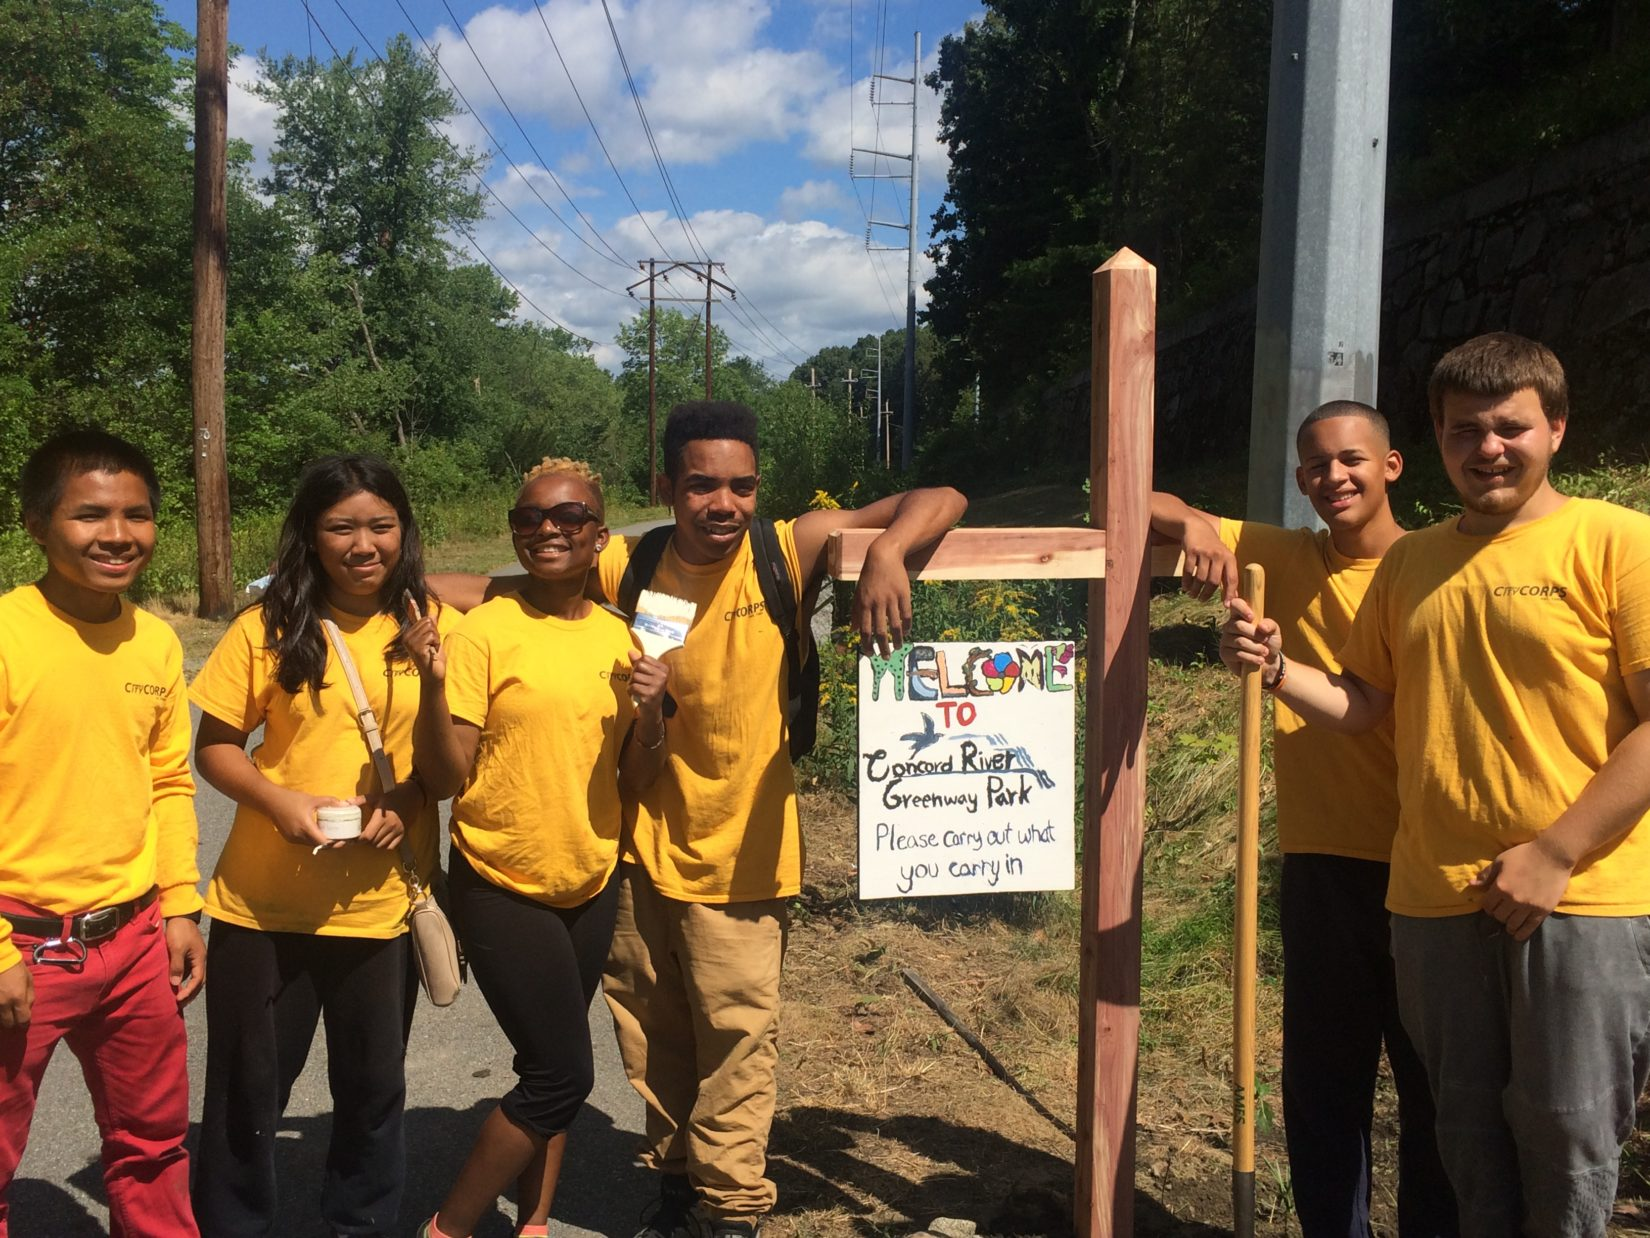 Spindle City Corps with their Concord River Greenway Sign